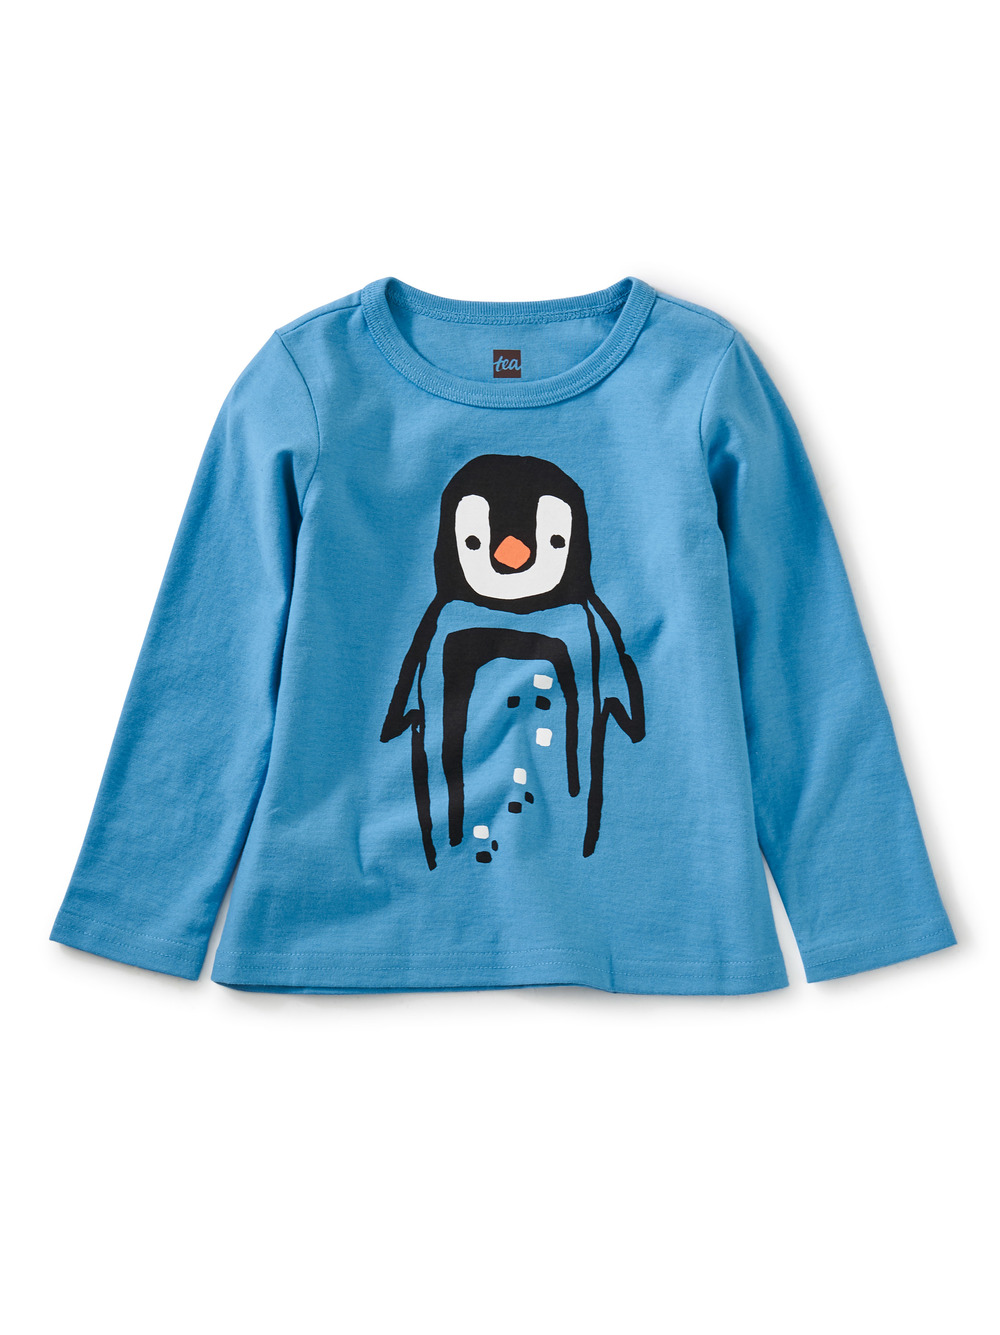 Penguin Pal Graphic Baby Tee